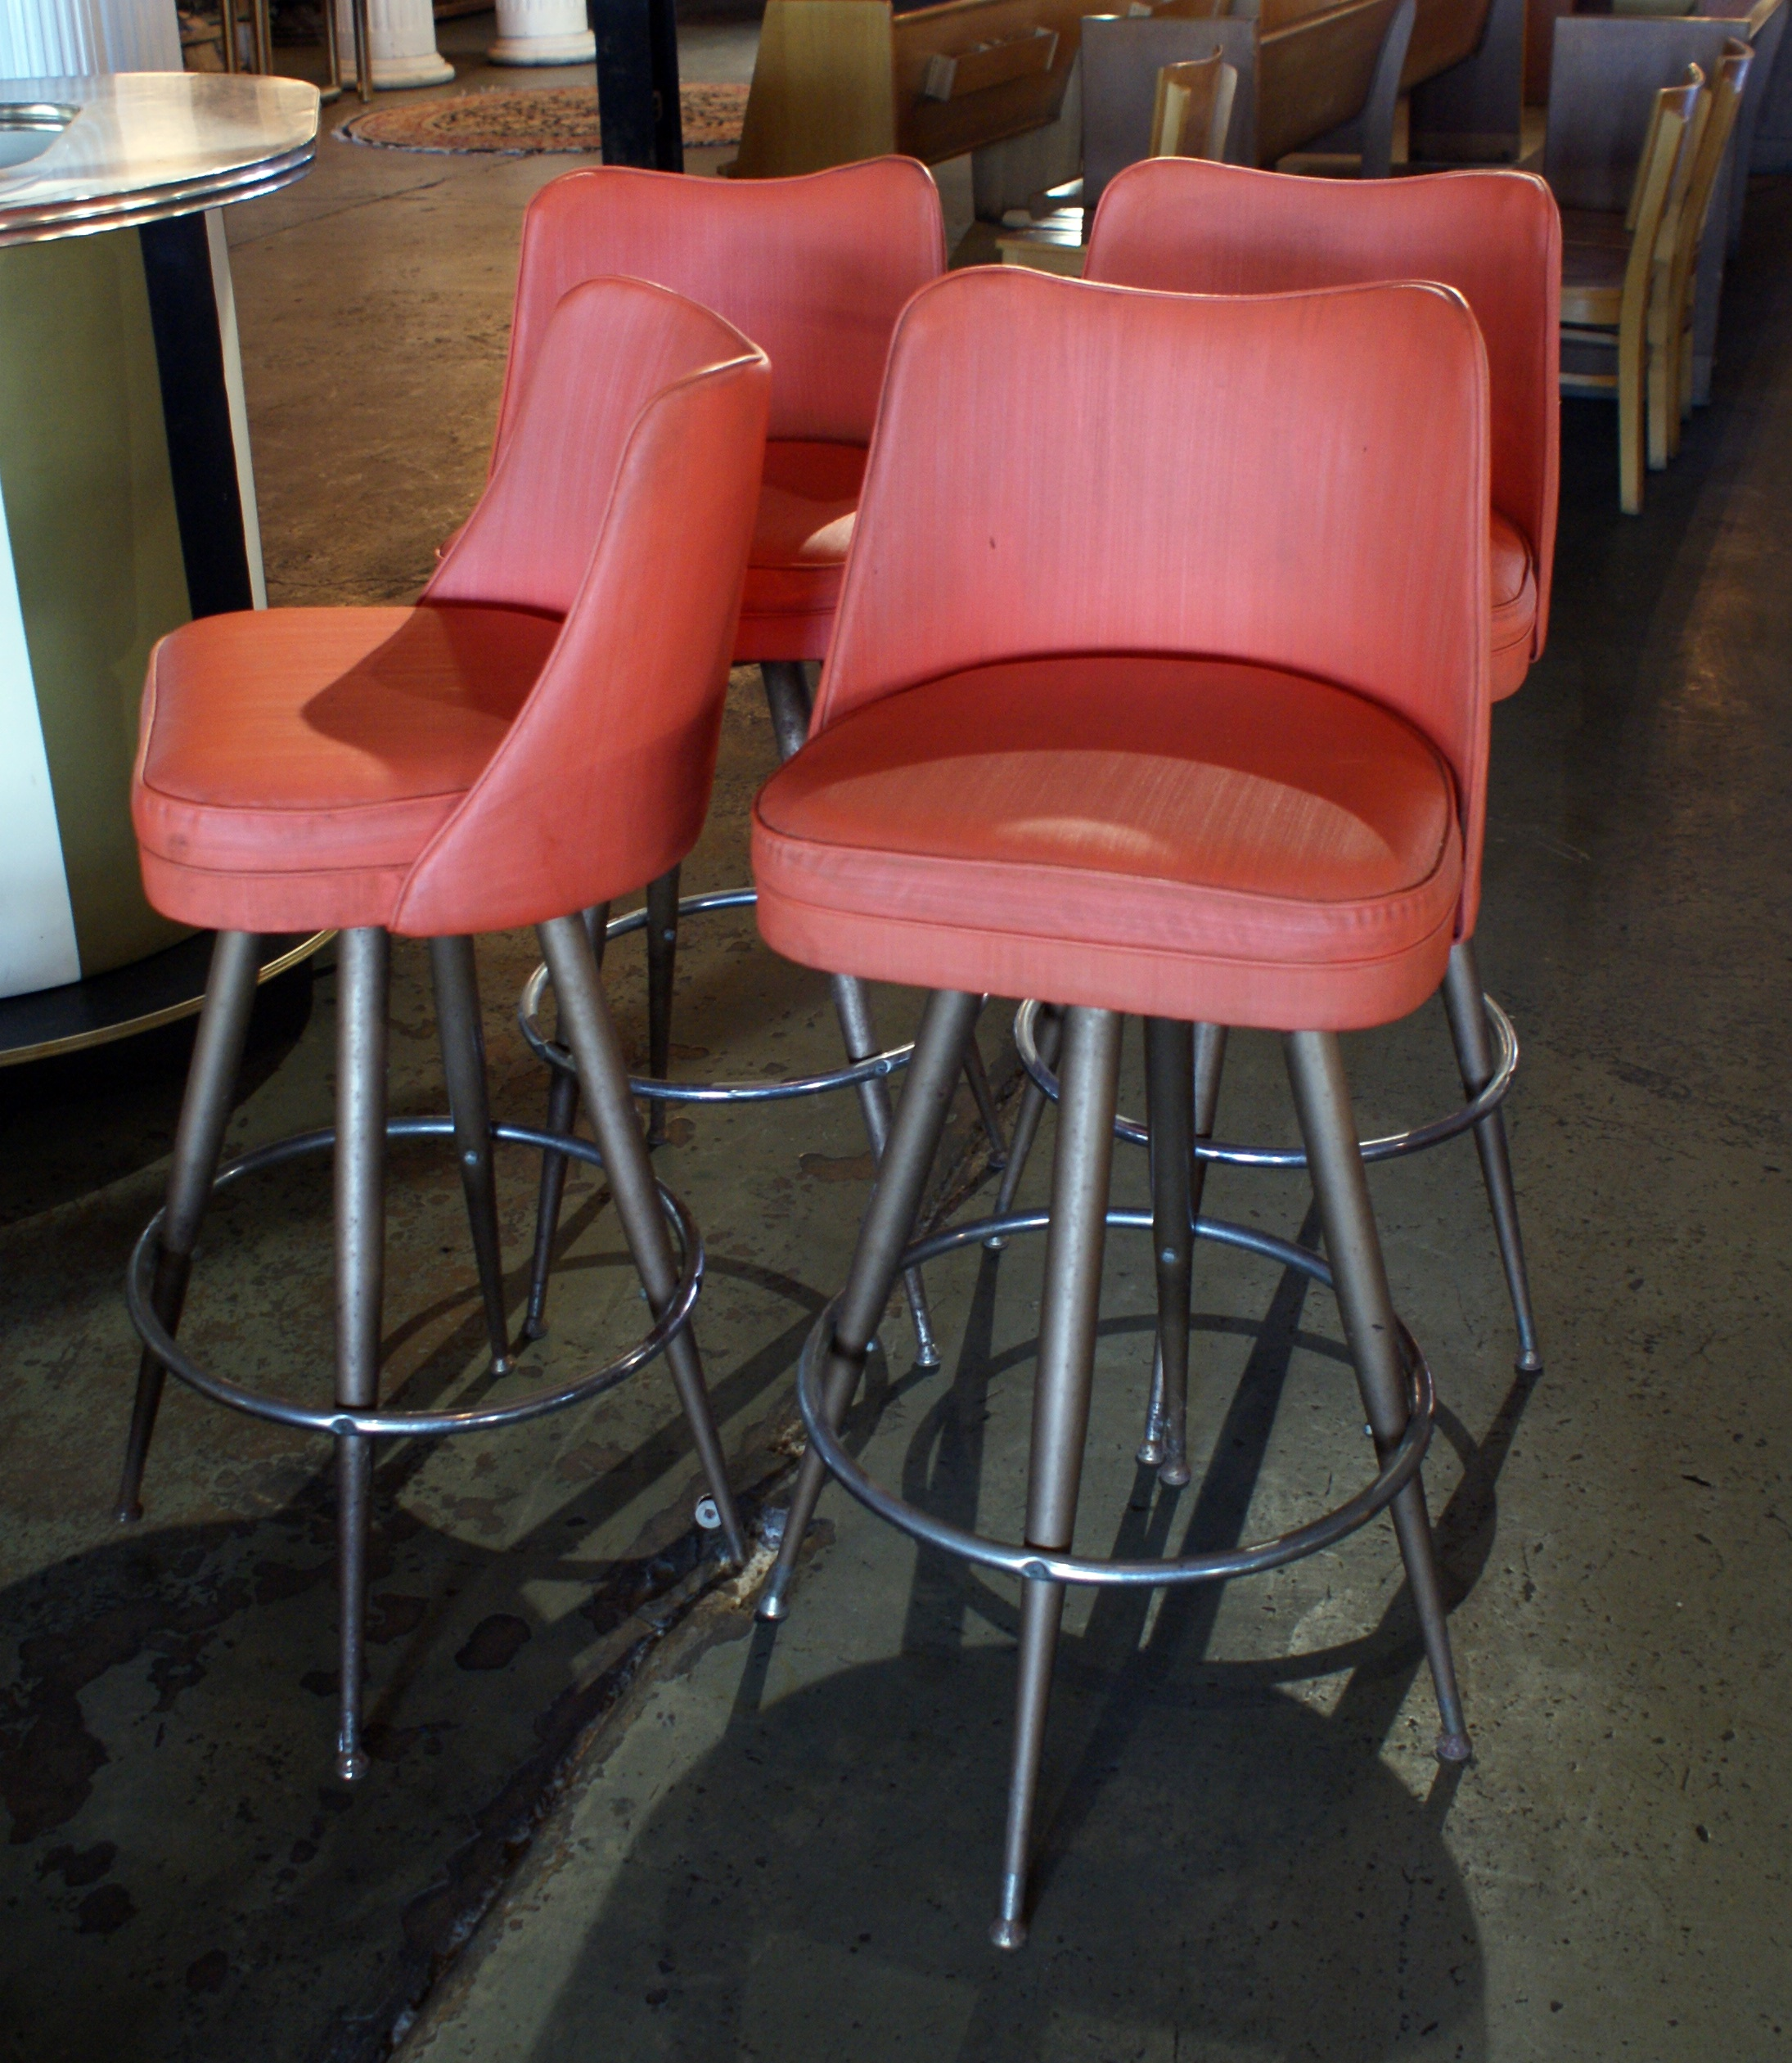 Vintage Orange Vinyl Swivel Bar Stool Salvage One